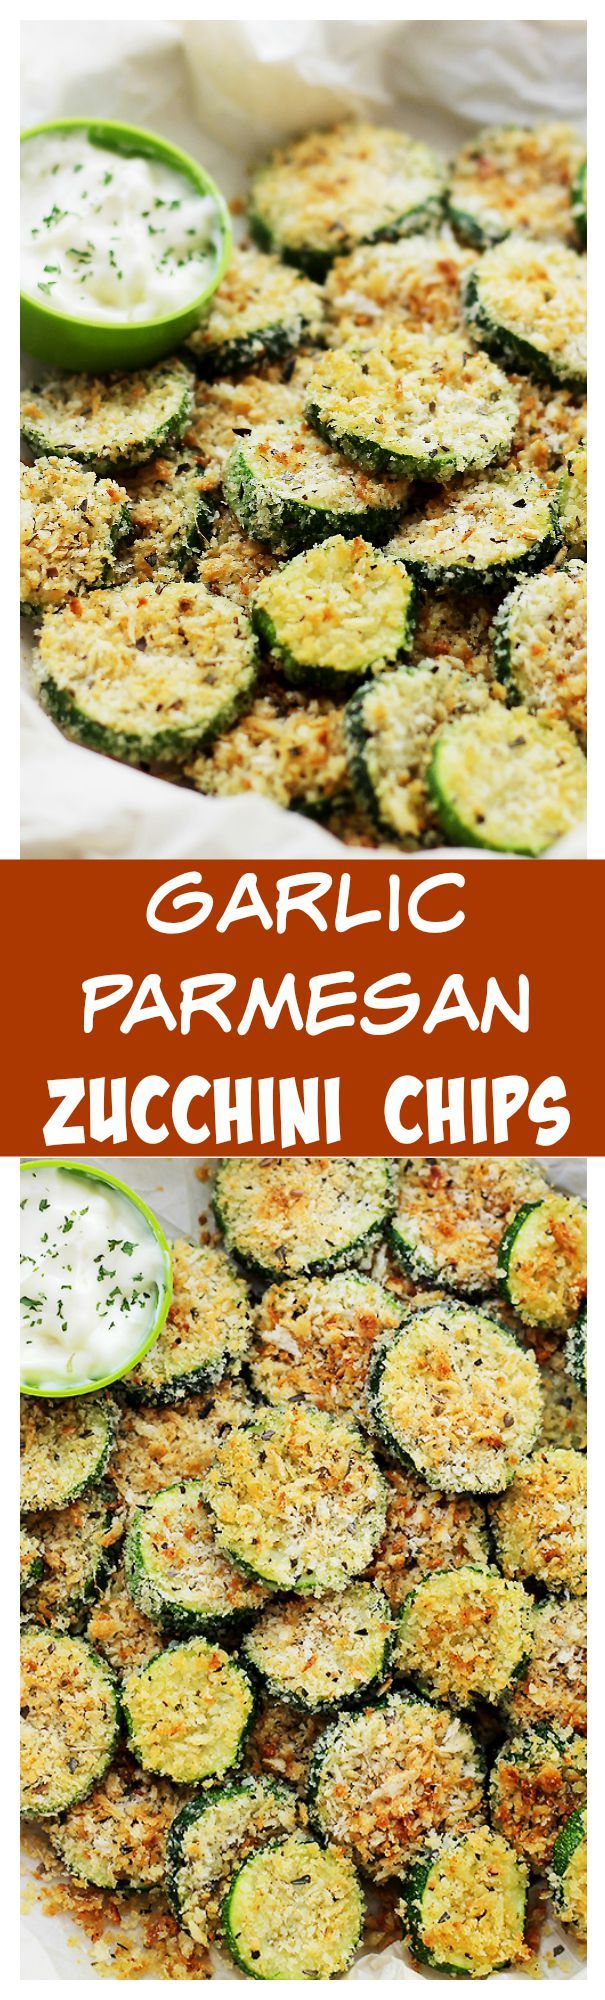 Baked Garlic Parmesan Zucchini Chips Www Diethood Com Crispy And Flavorful Baked Zucchini